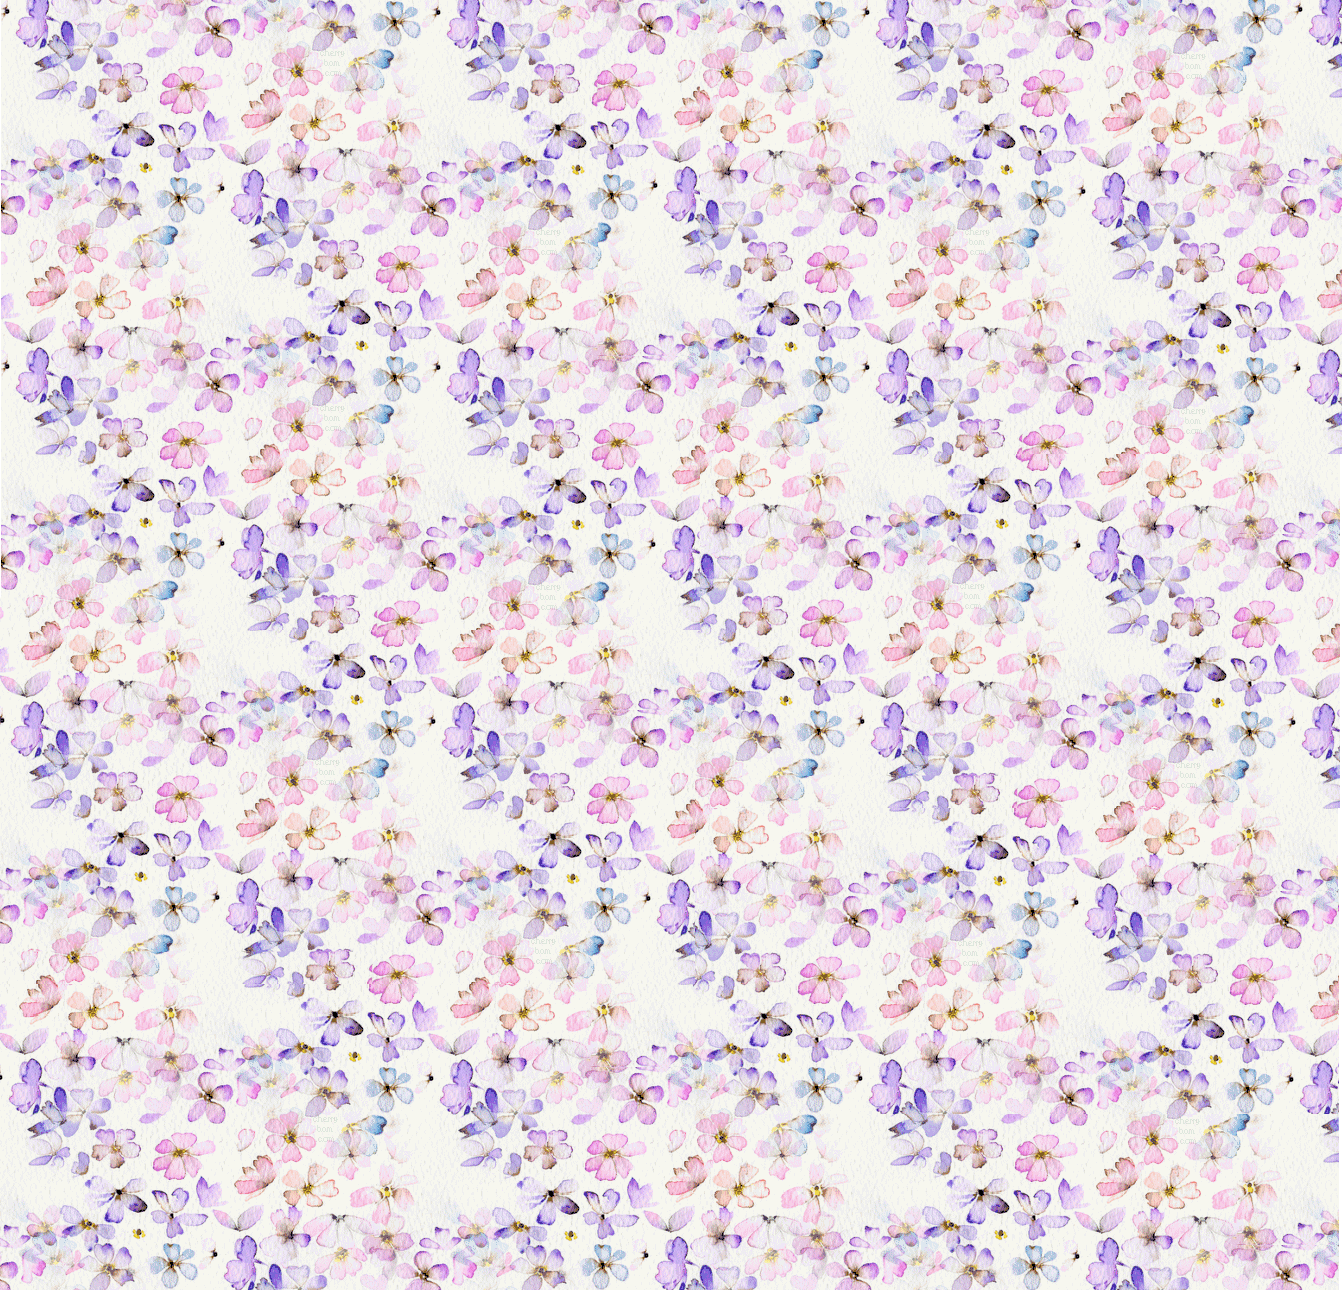 tumblr floral print wallpaper tumblr floral print background